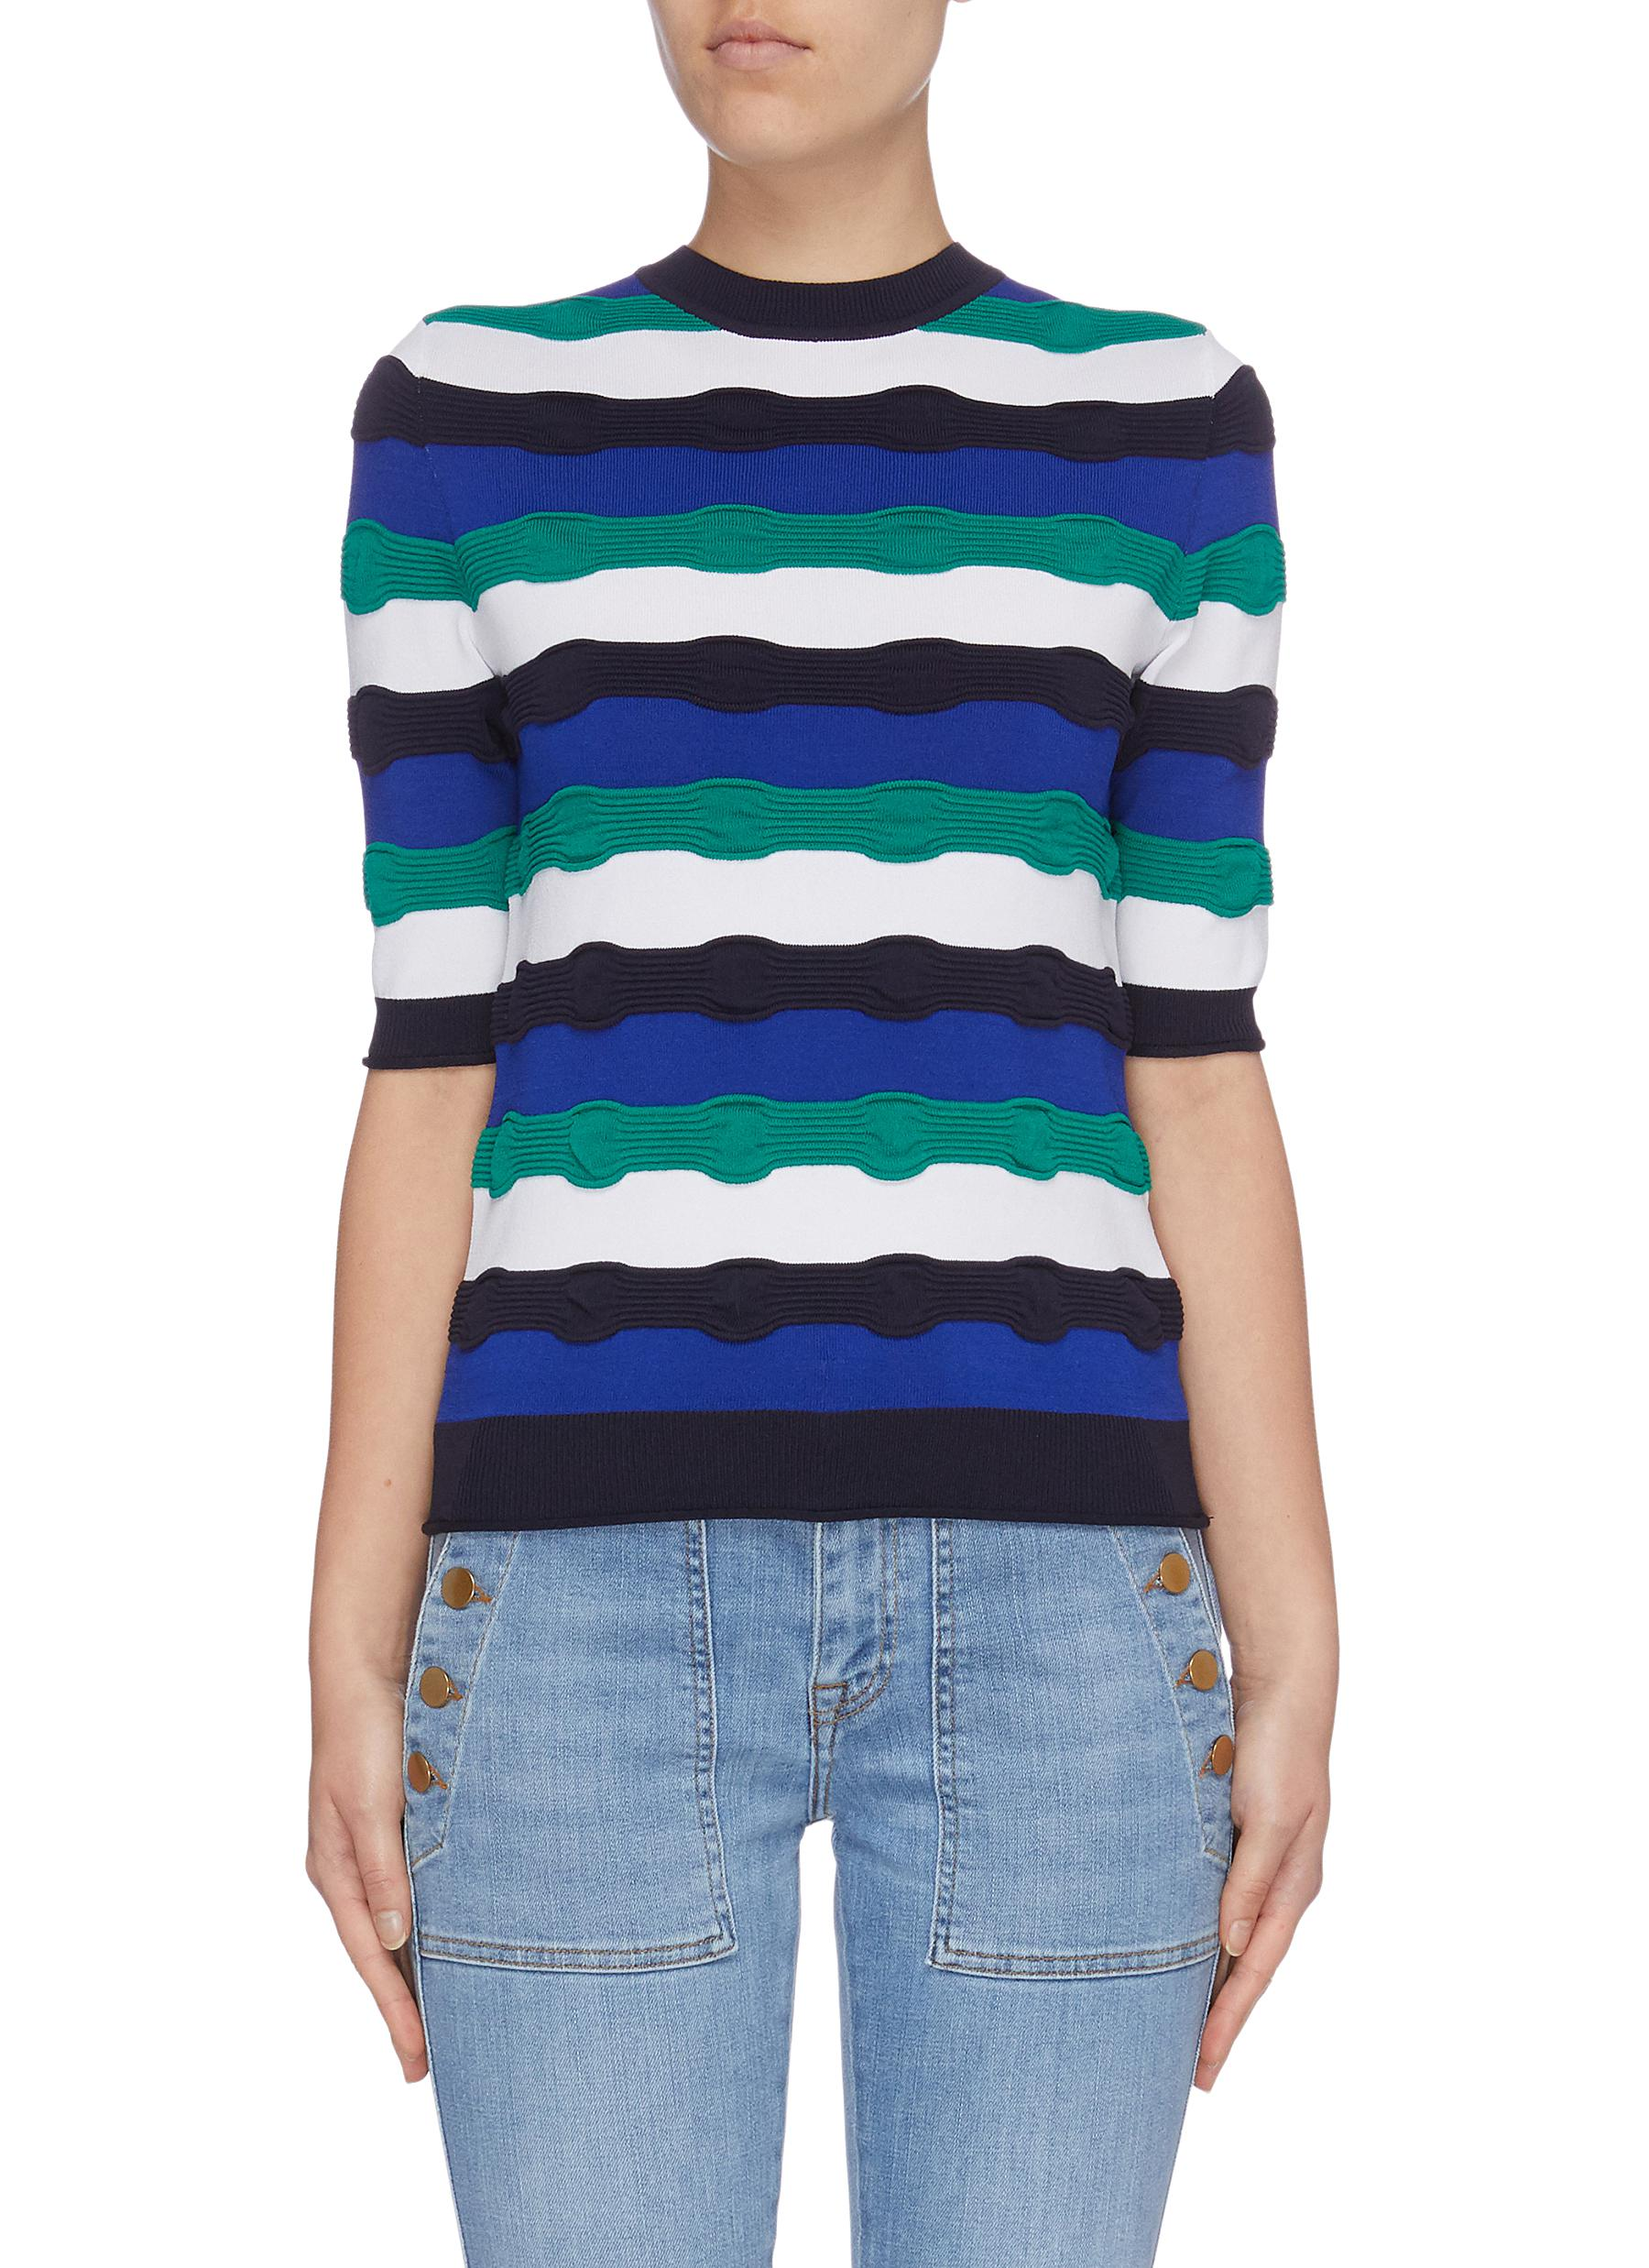 Wavy stripe mix knit short sleeve sweater by Victoria, Victoria Beckham